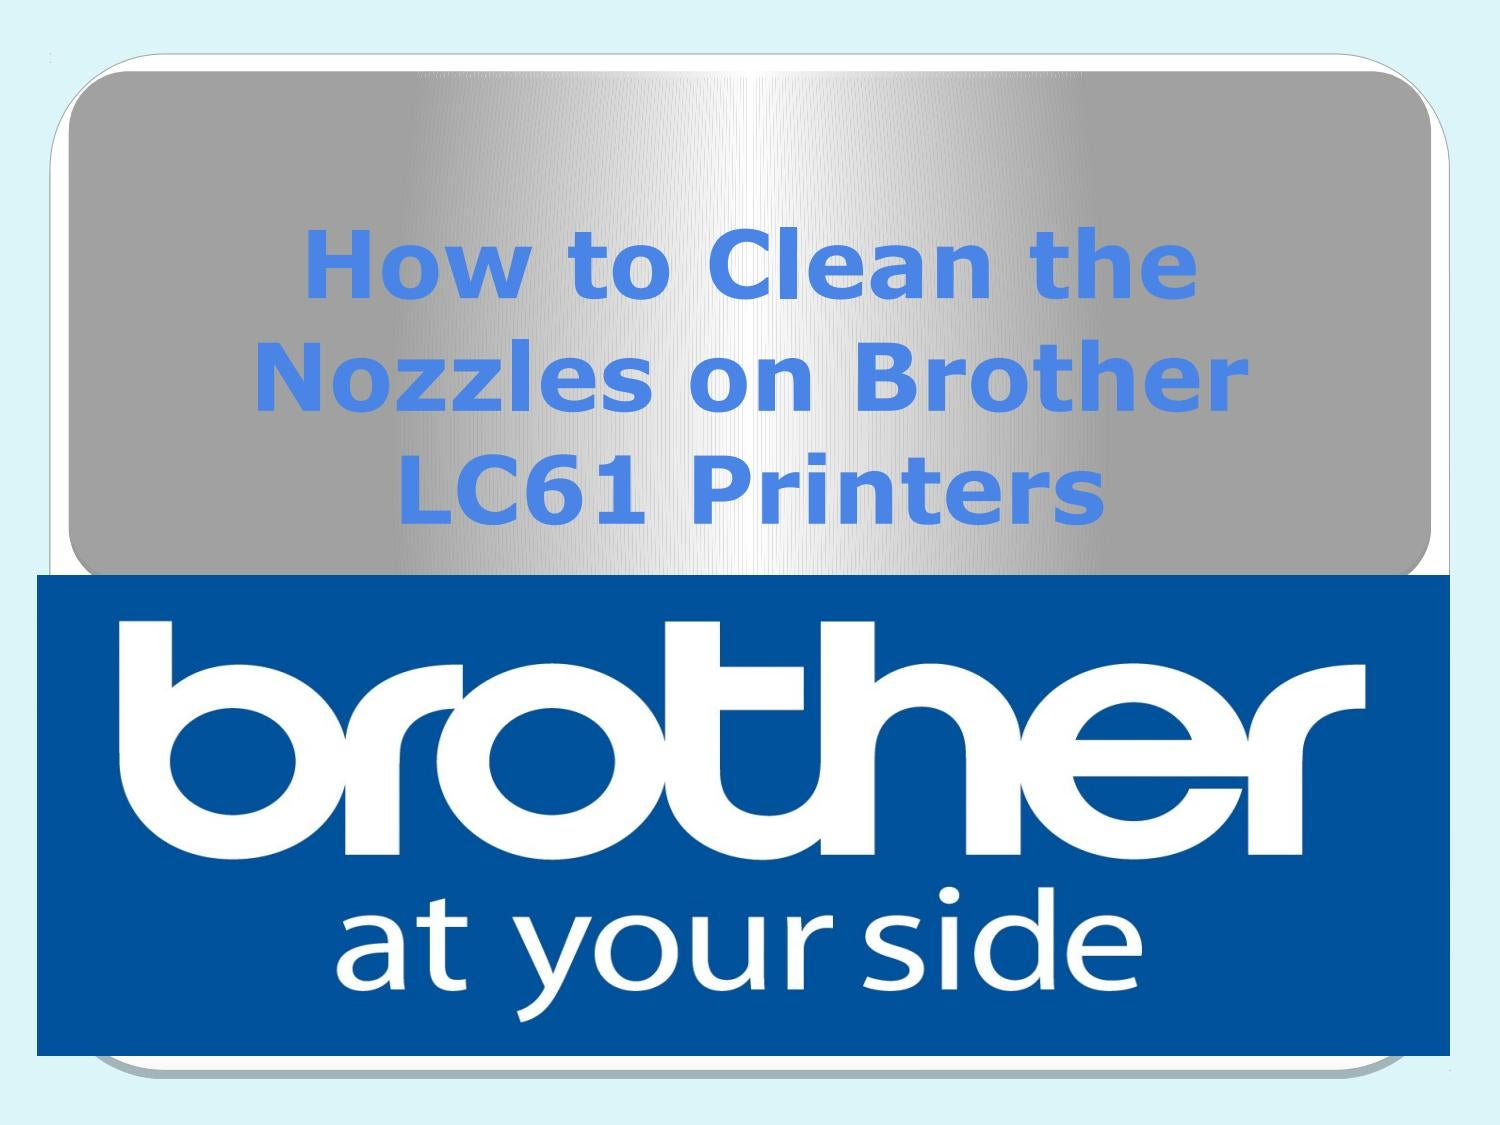 How to clean the nozzles on brother lc61 printers by ...